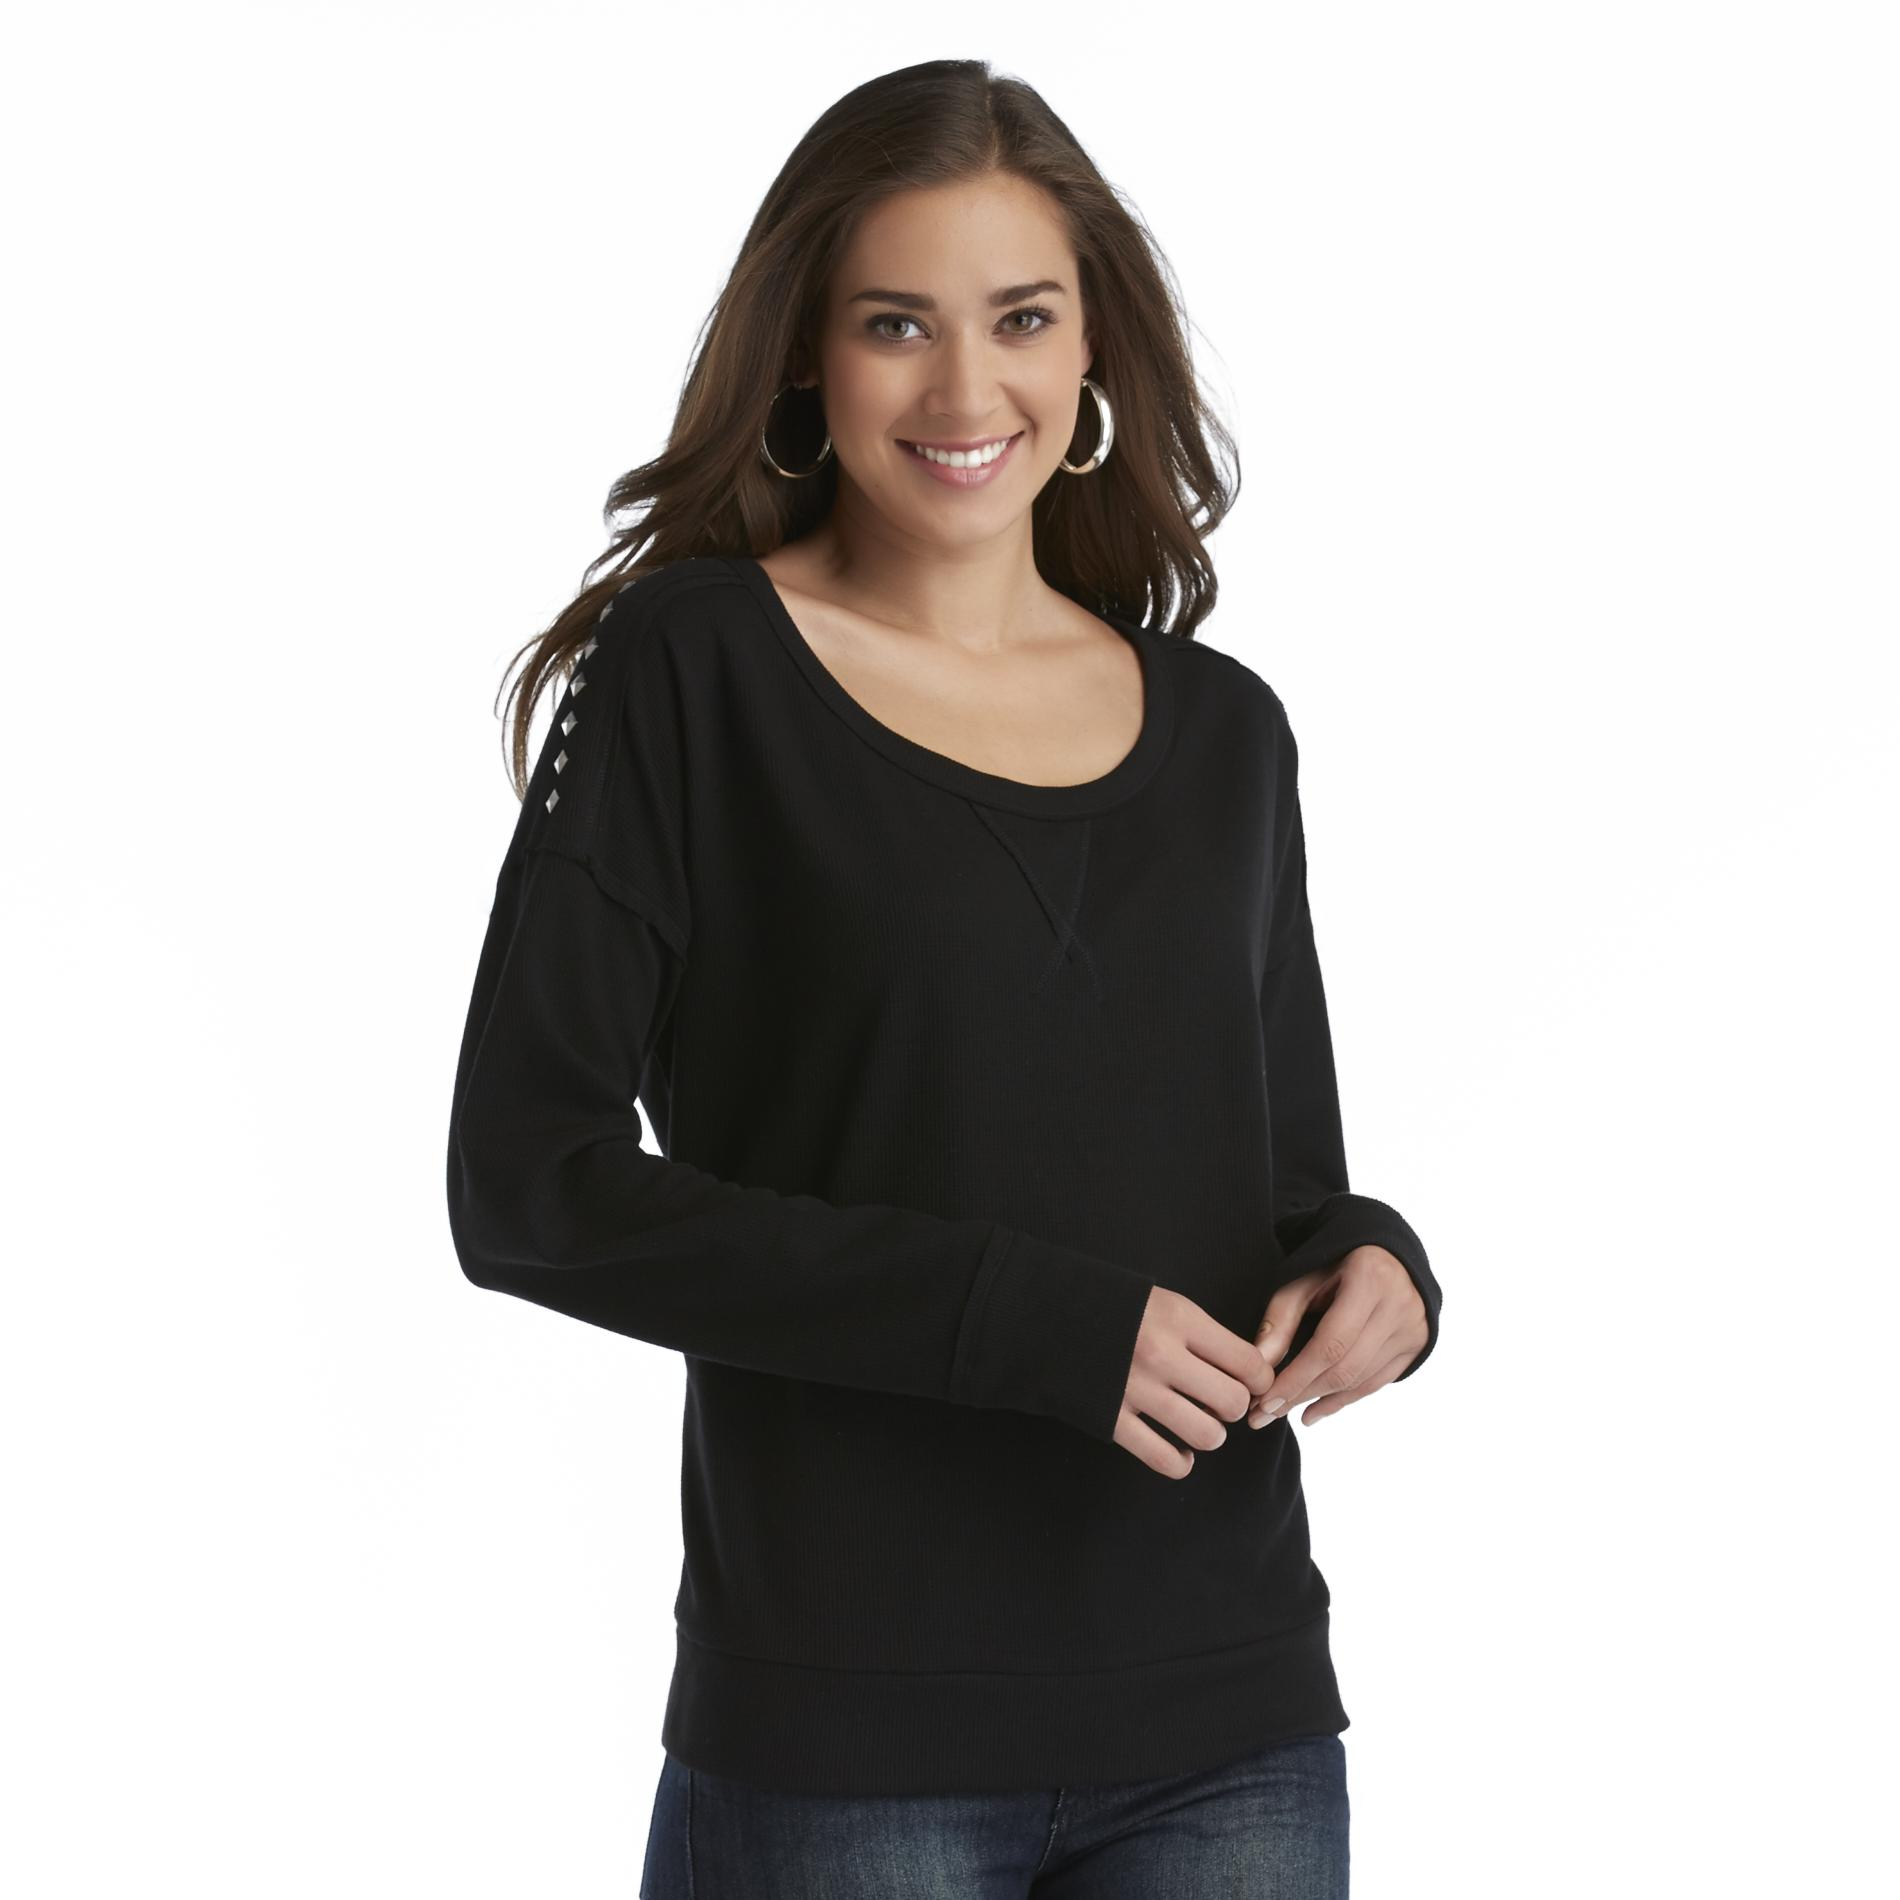 Joe by Joe Boxer Women's Thermal Top - Studs at Sears.com